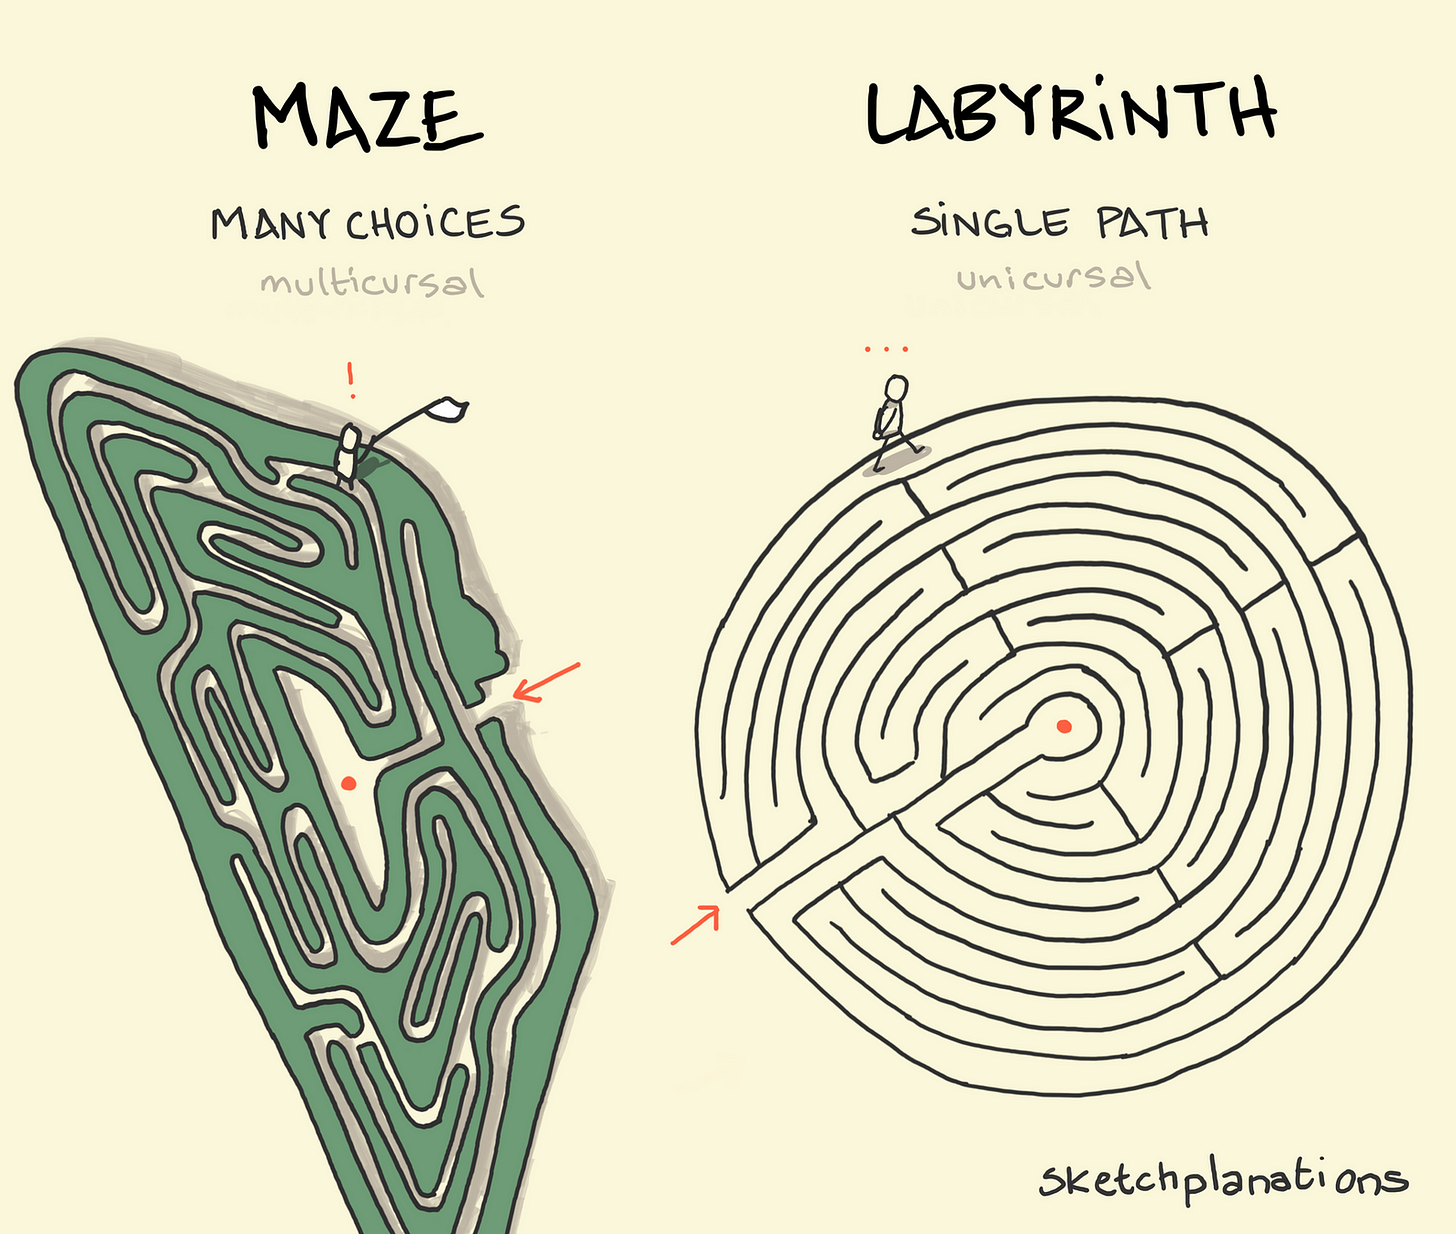 Labyrinths and mazes - Sketchplanations